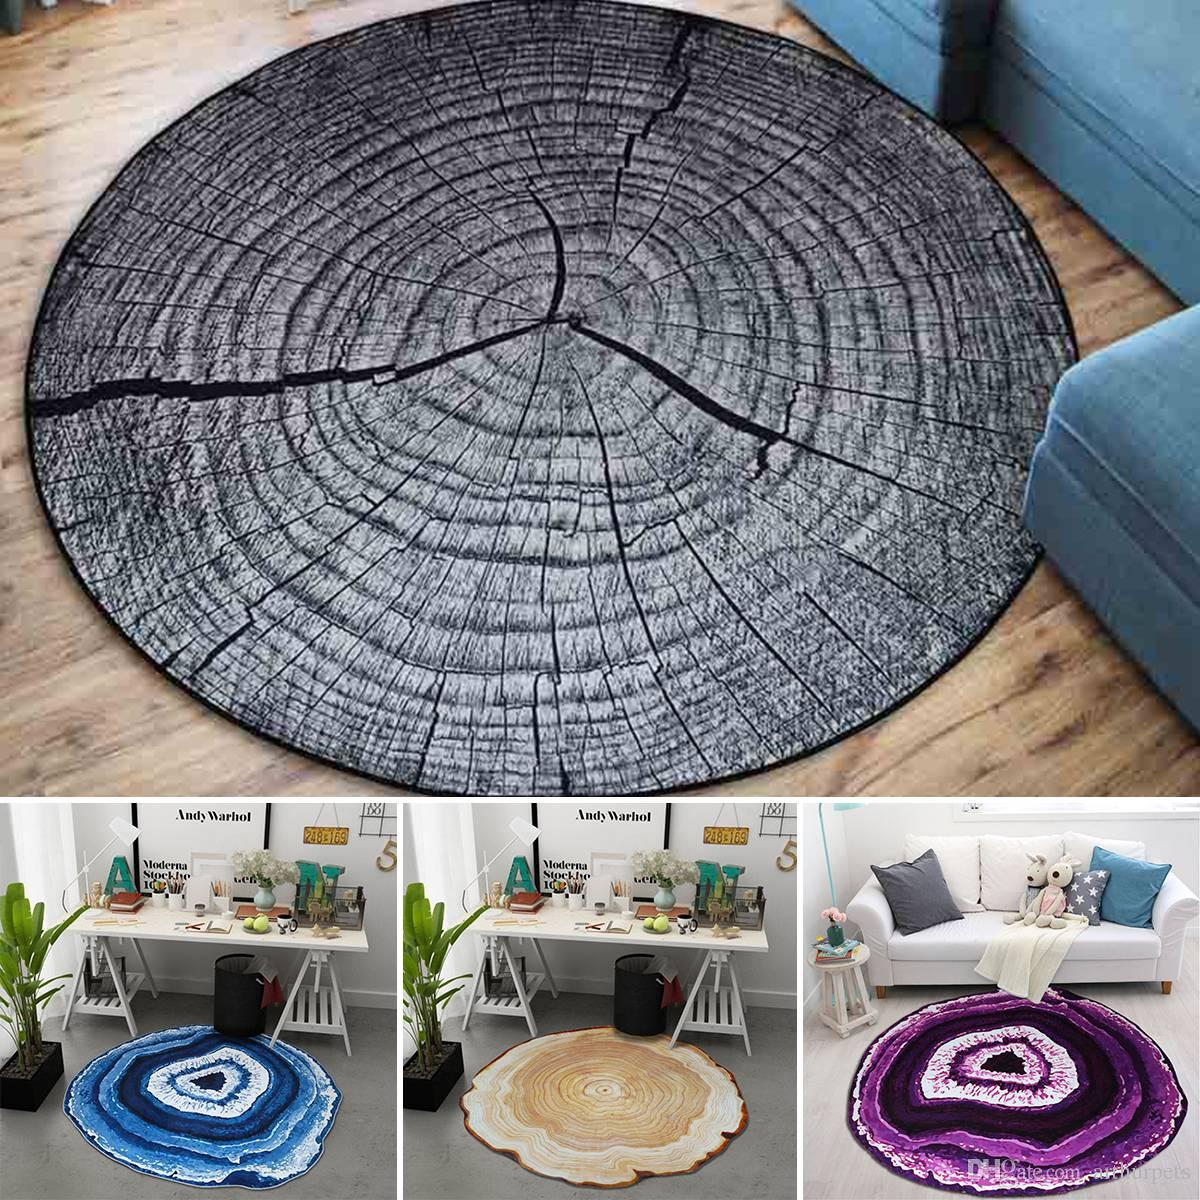 Cool 3D Growth Ring Pattern Carpet For